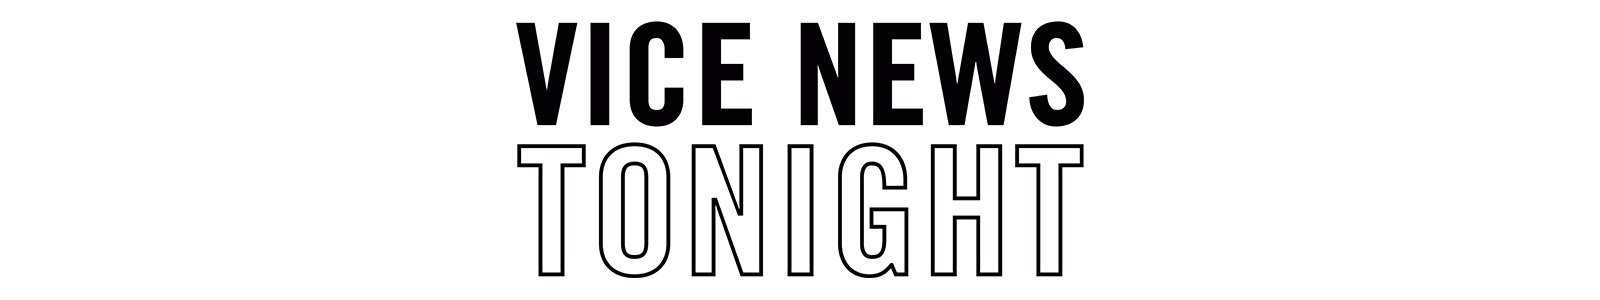 VICE News Tonight | Official Website of the HBO Series | HBO